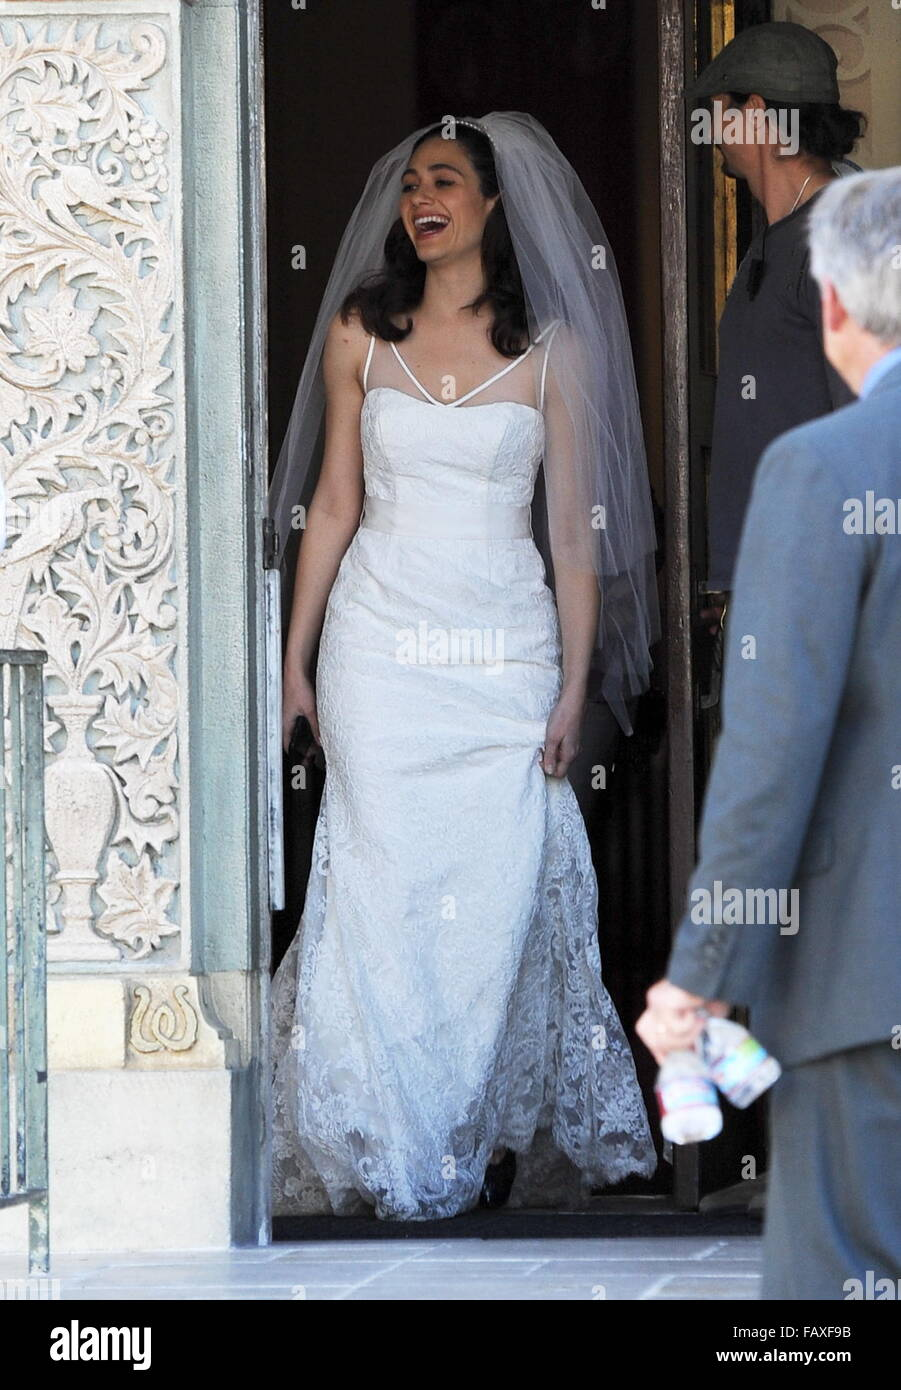 Emmy Rossum Wedding.Actress Emmy Rossum Looking Flawless In A Wedding Dress As She Stock